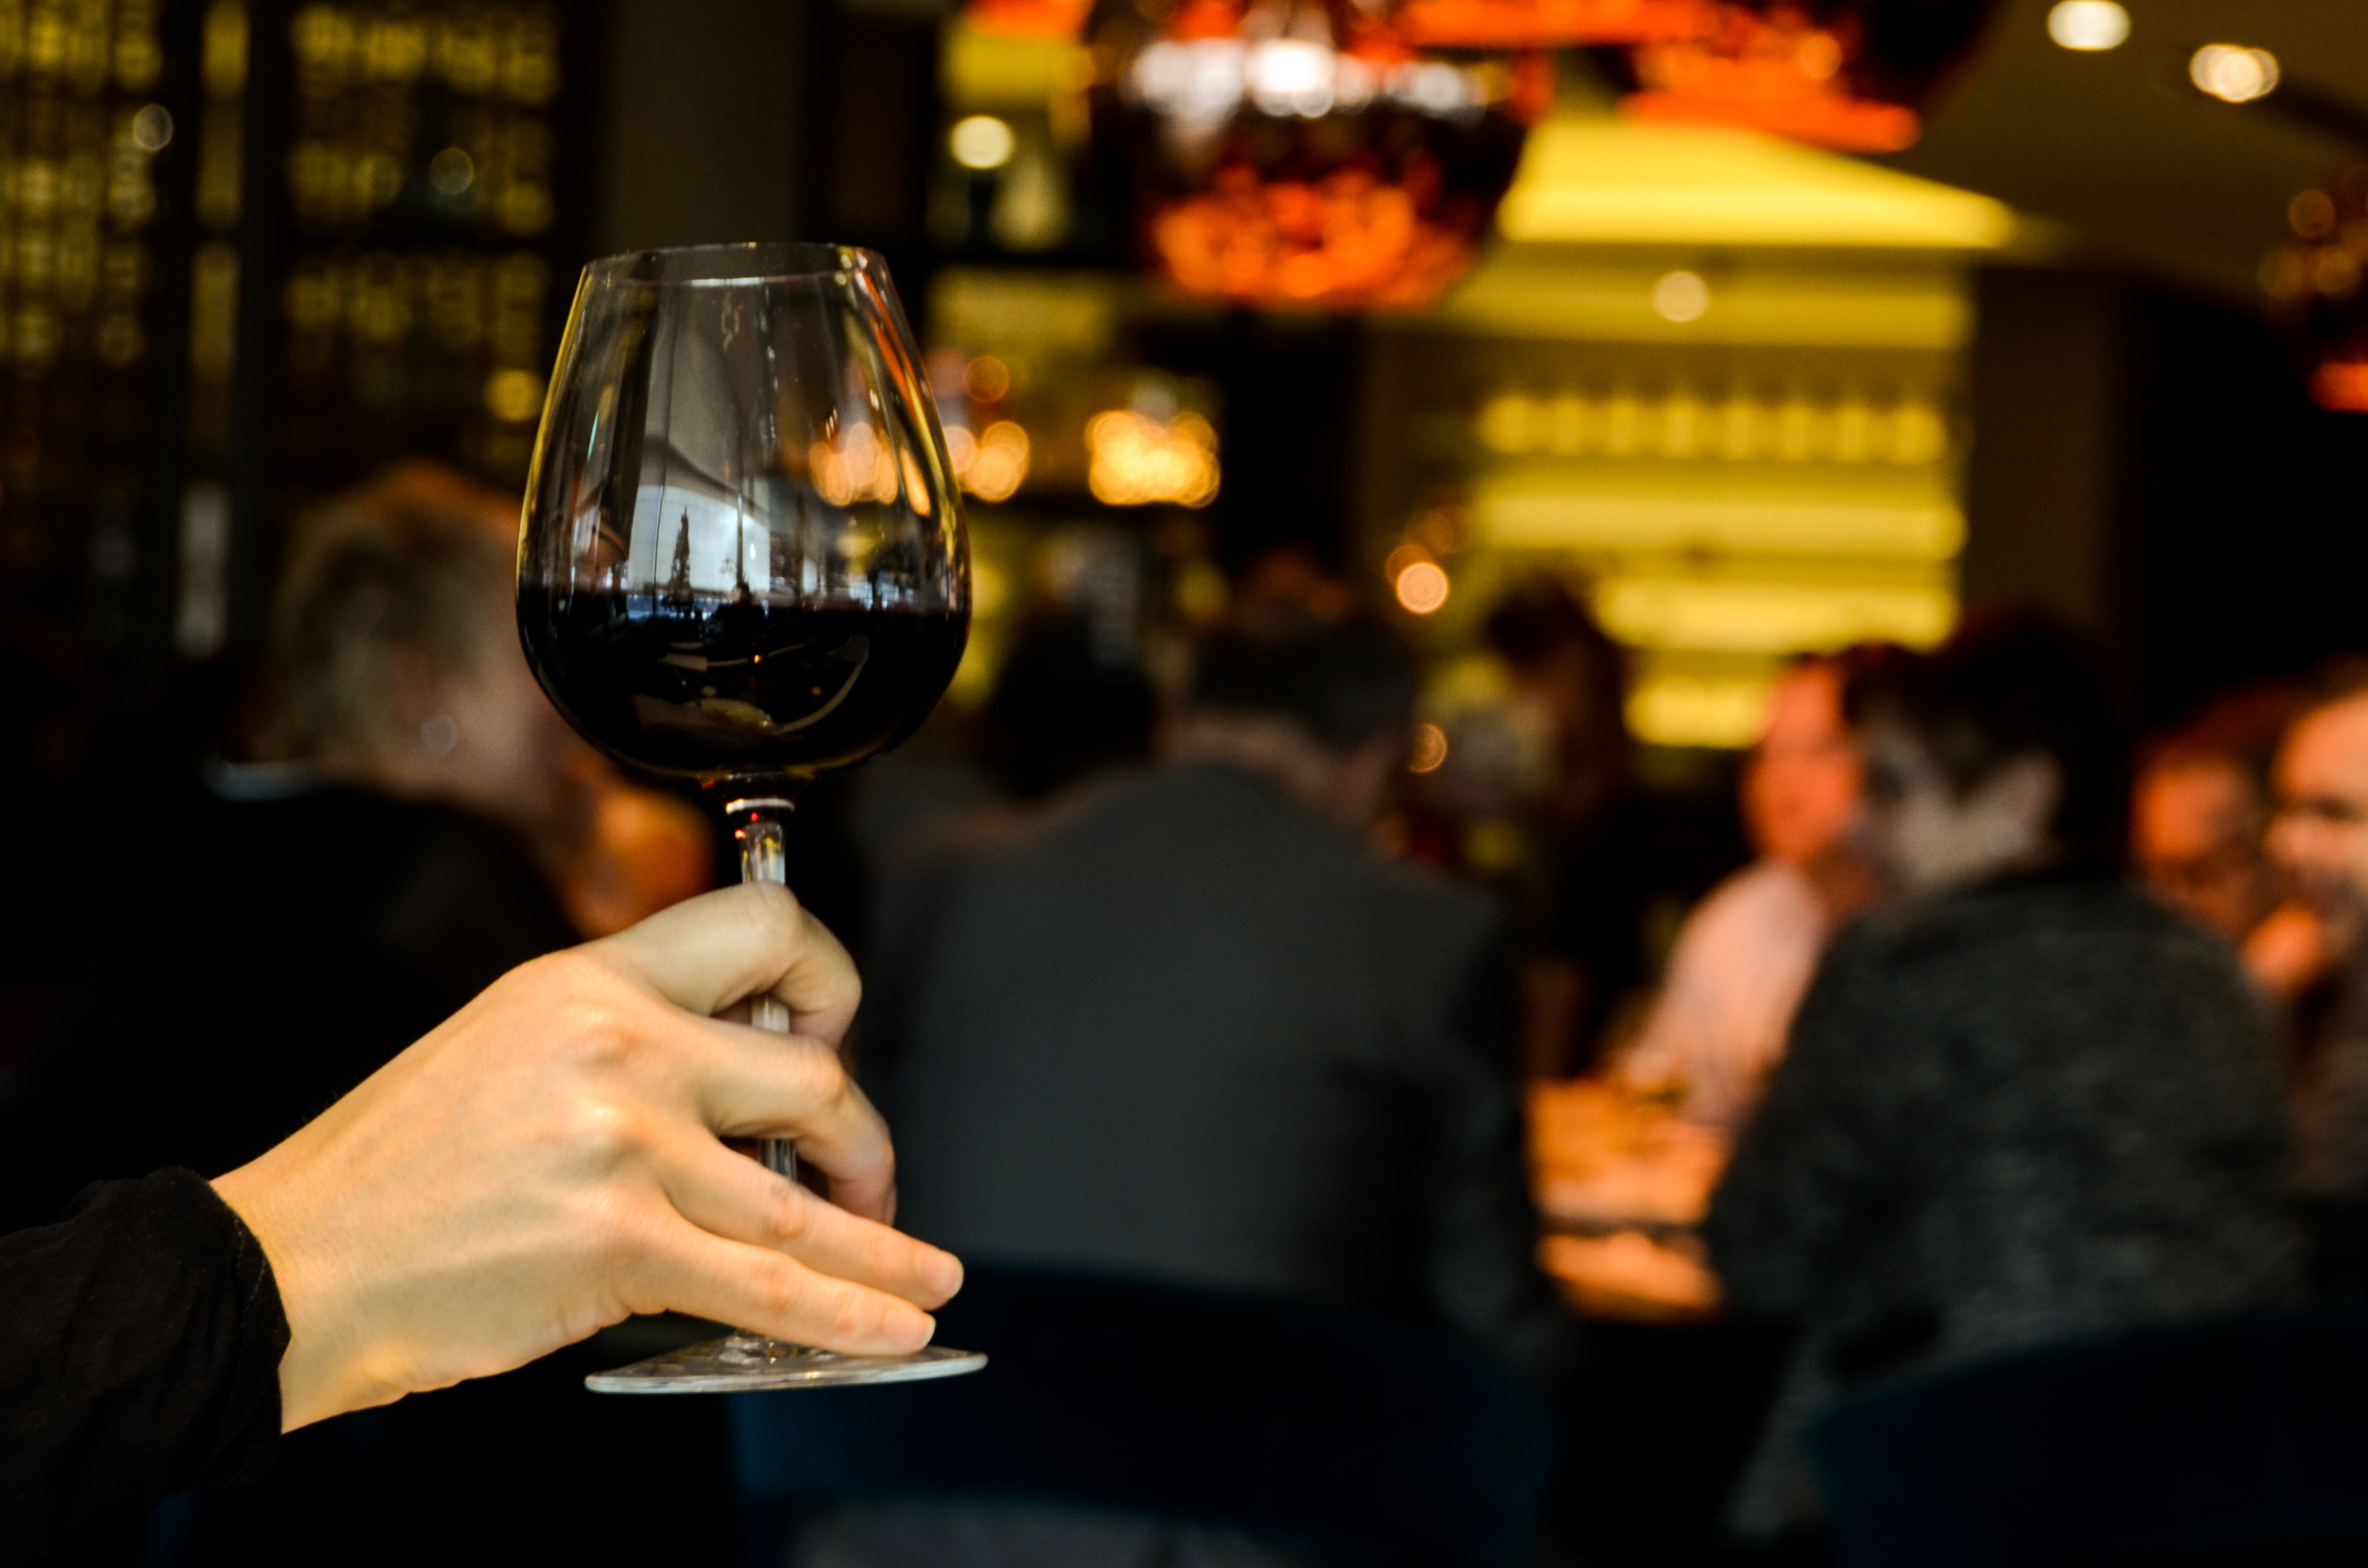 a person holding a glass of wine, in their hand with a busy bar in the background